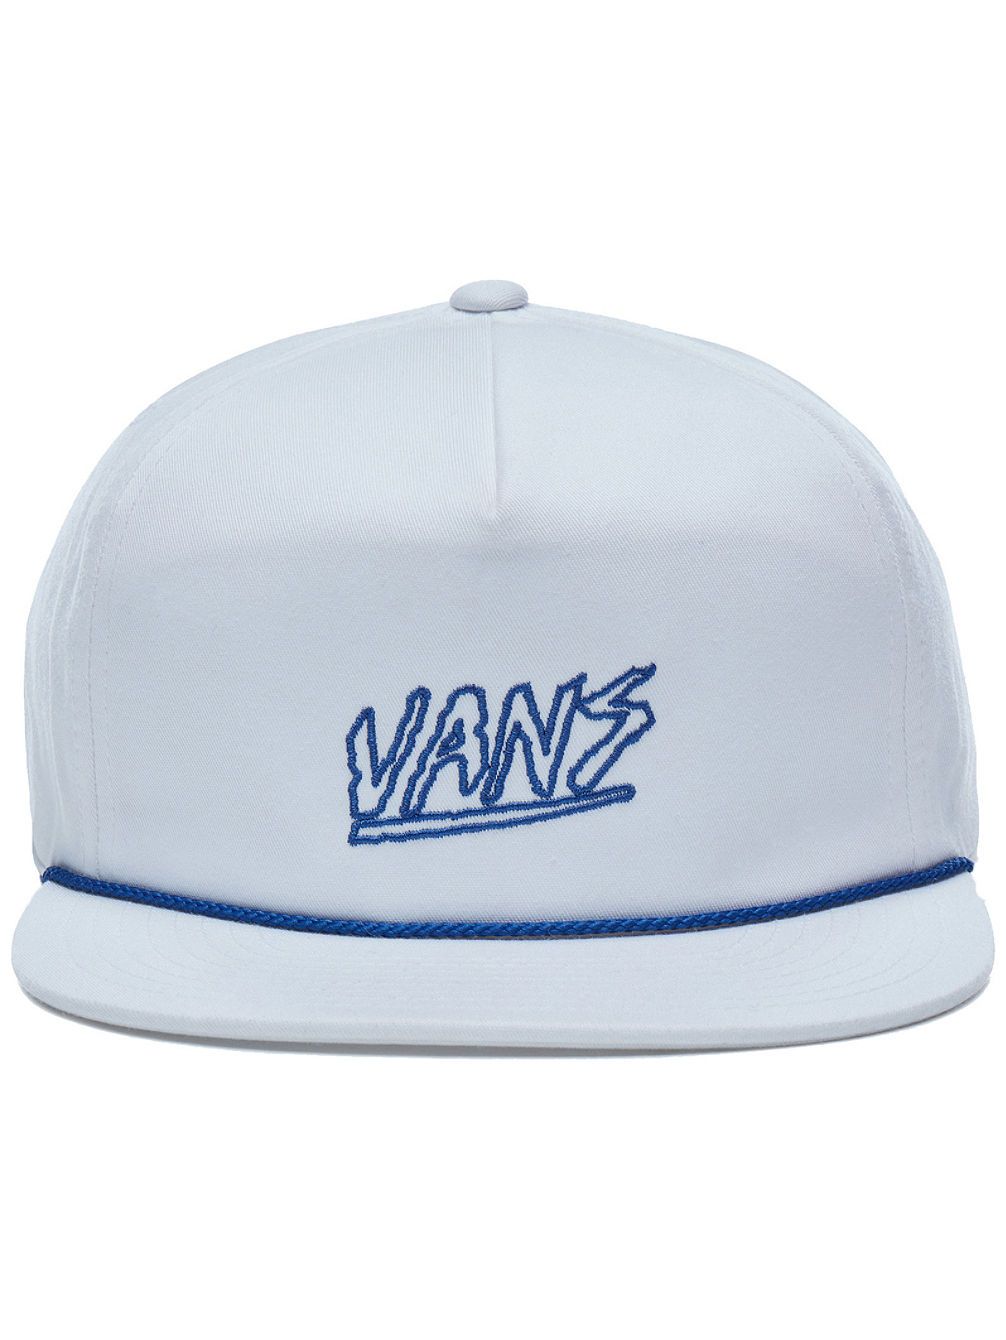 Buy Vans Radness Shallow Unstructured Cap online at blue-tomato.com 8dfac5f6c09